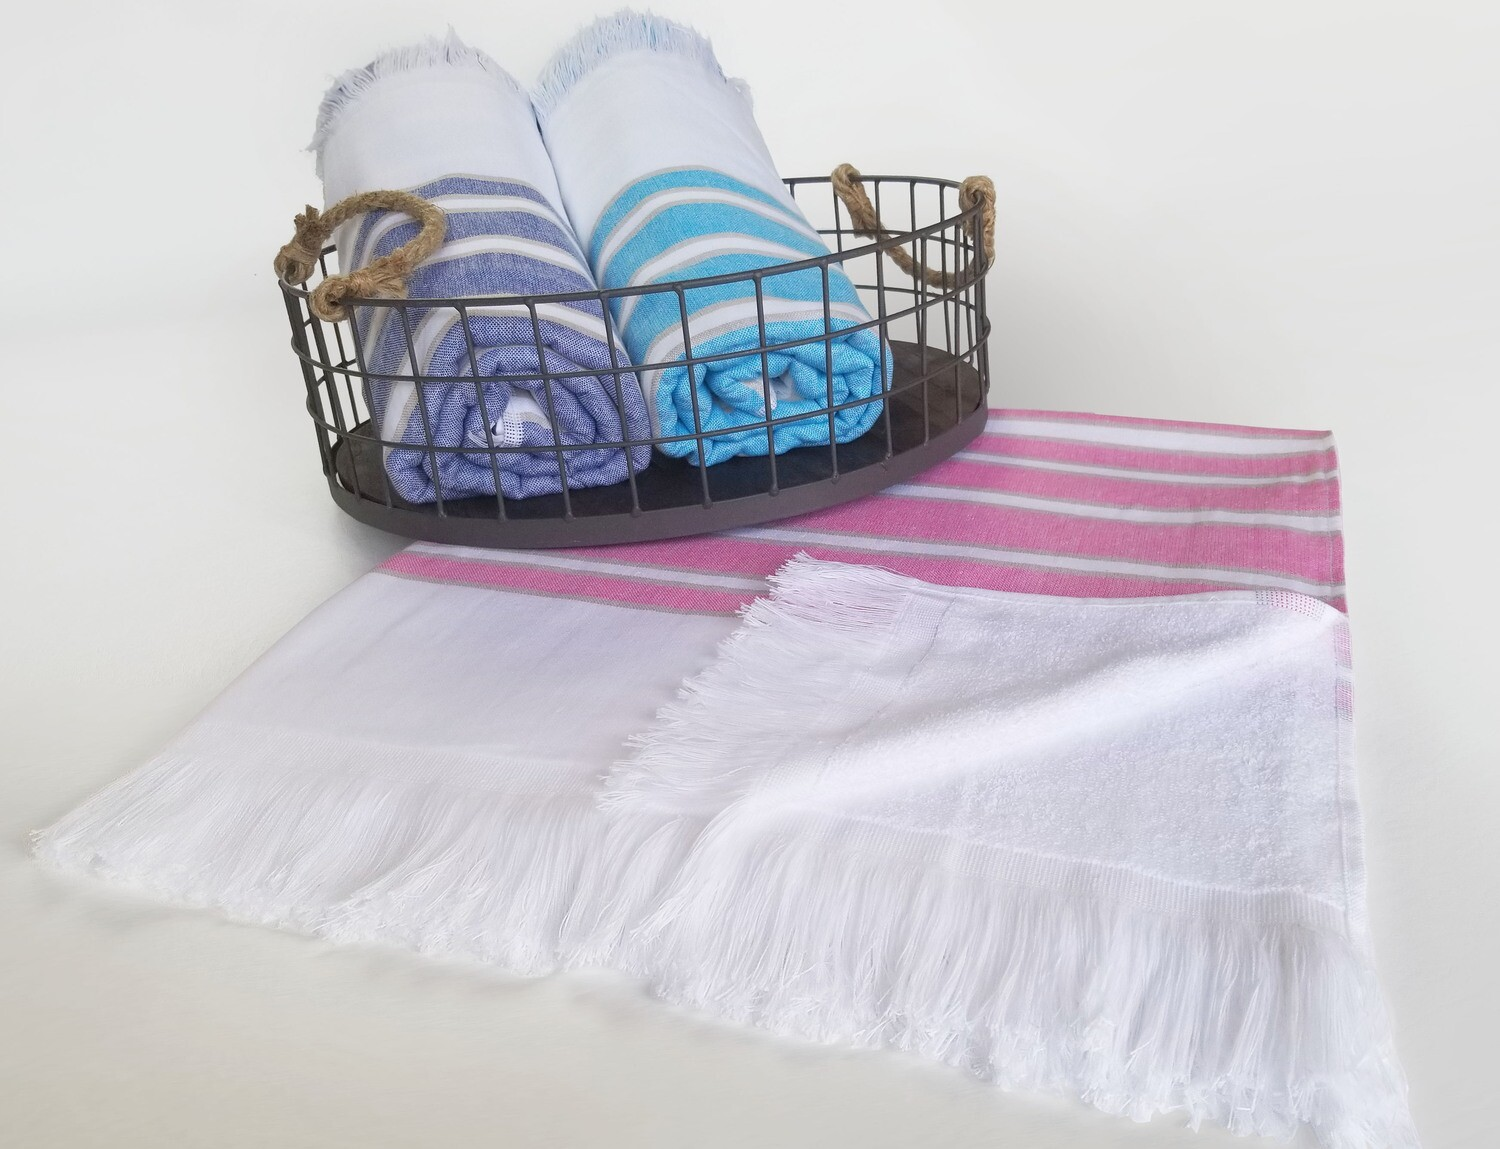 36x70 Turkish Beach Towels with Fringes, 19 lbs per Dz.